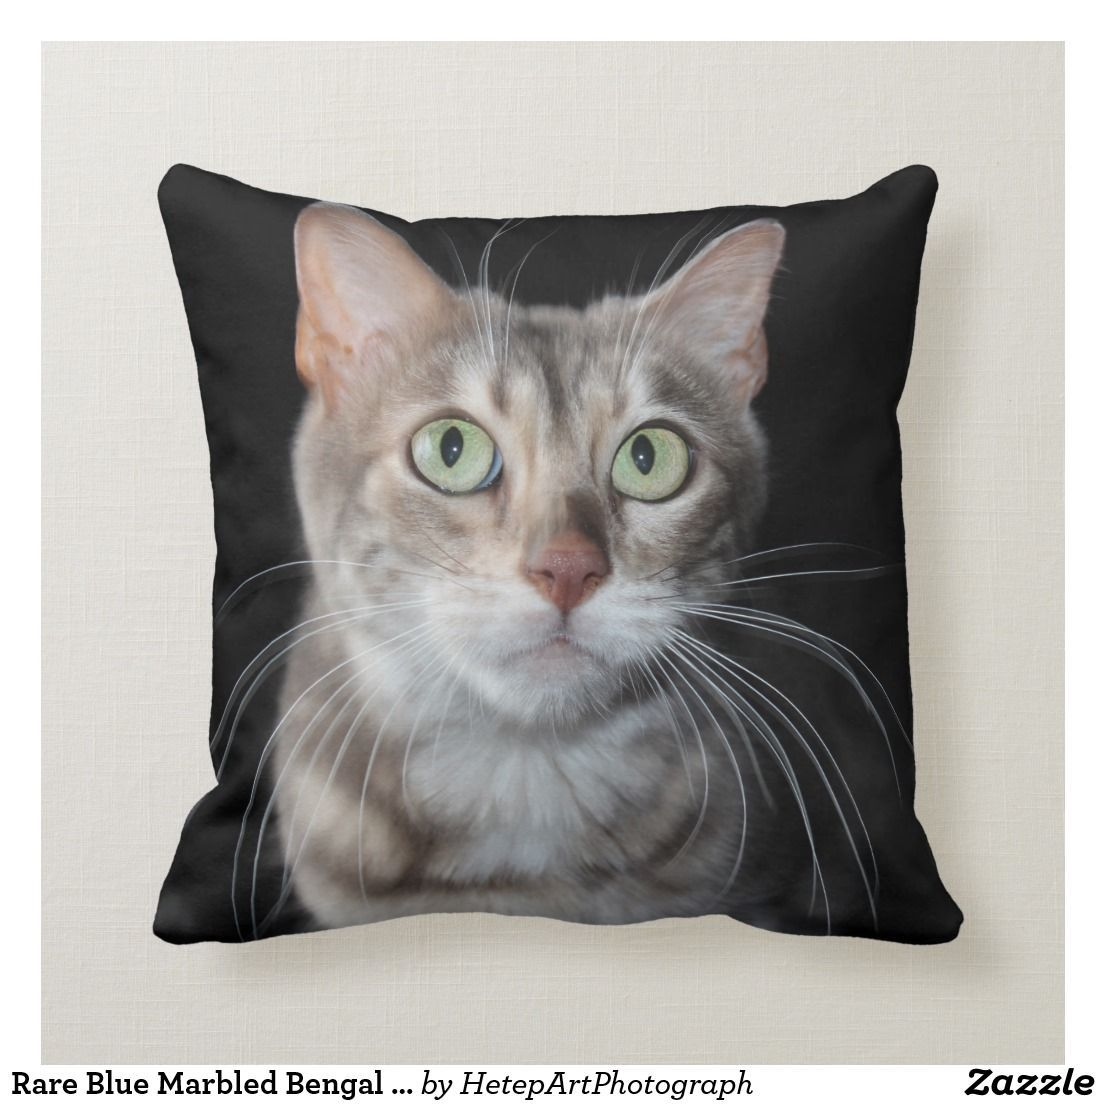 Rare Blue Marbled Bengal Cat Photograph Throw Pillow